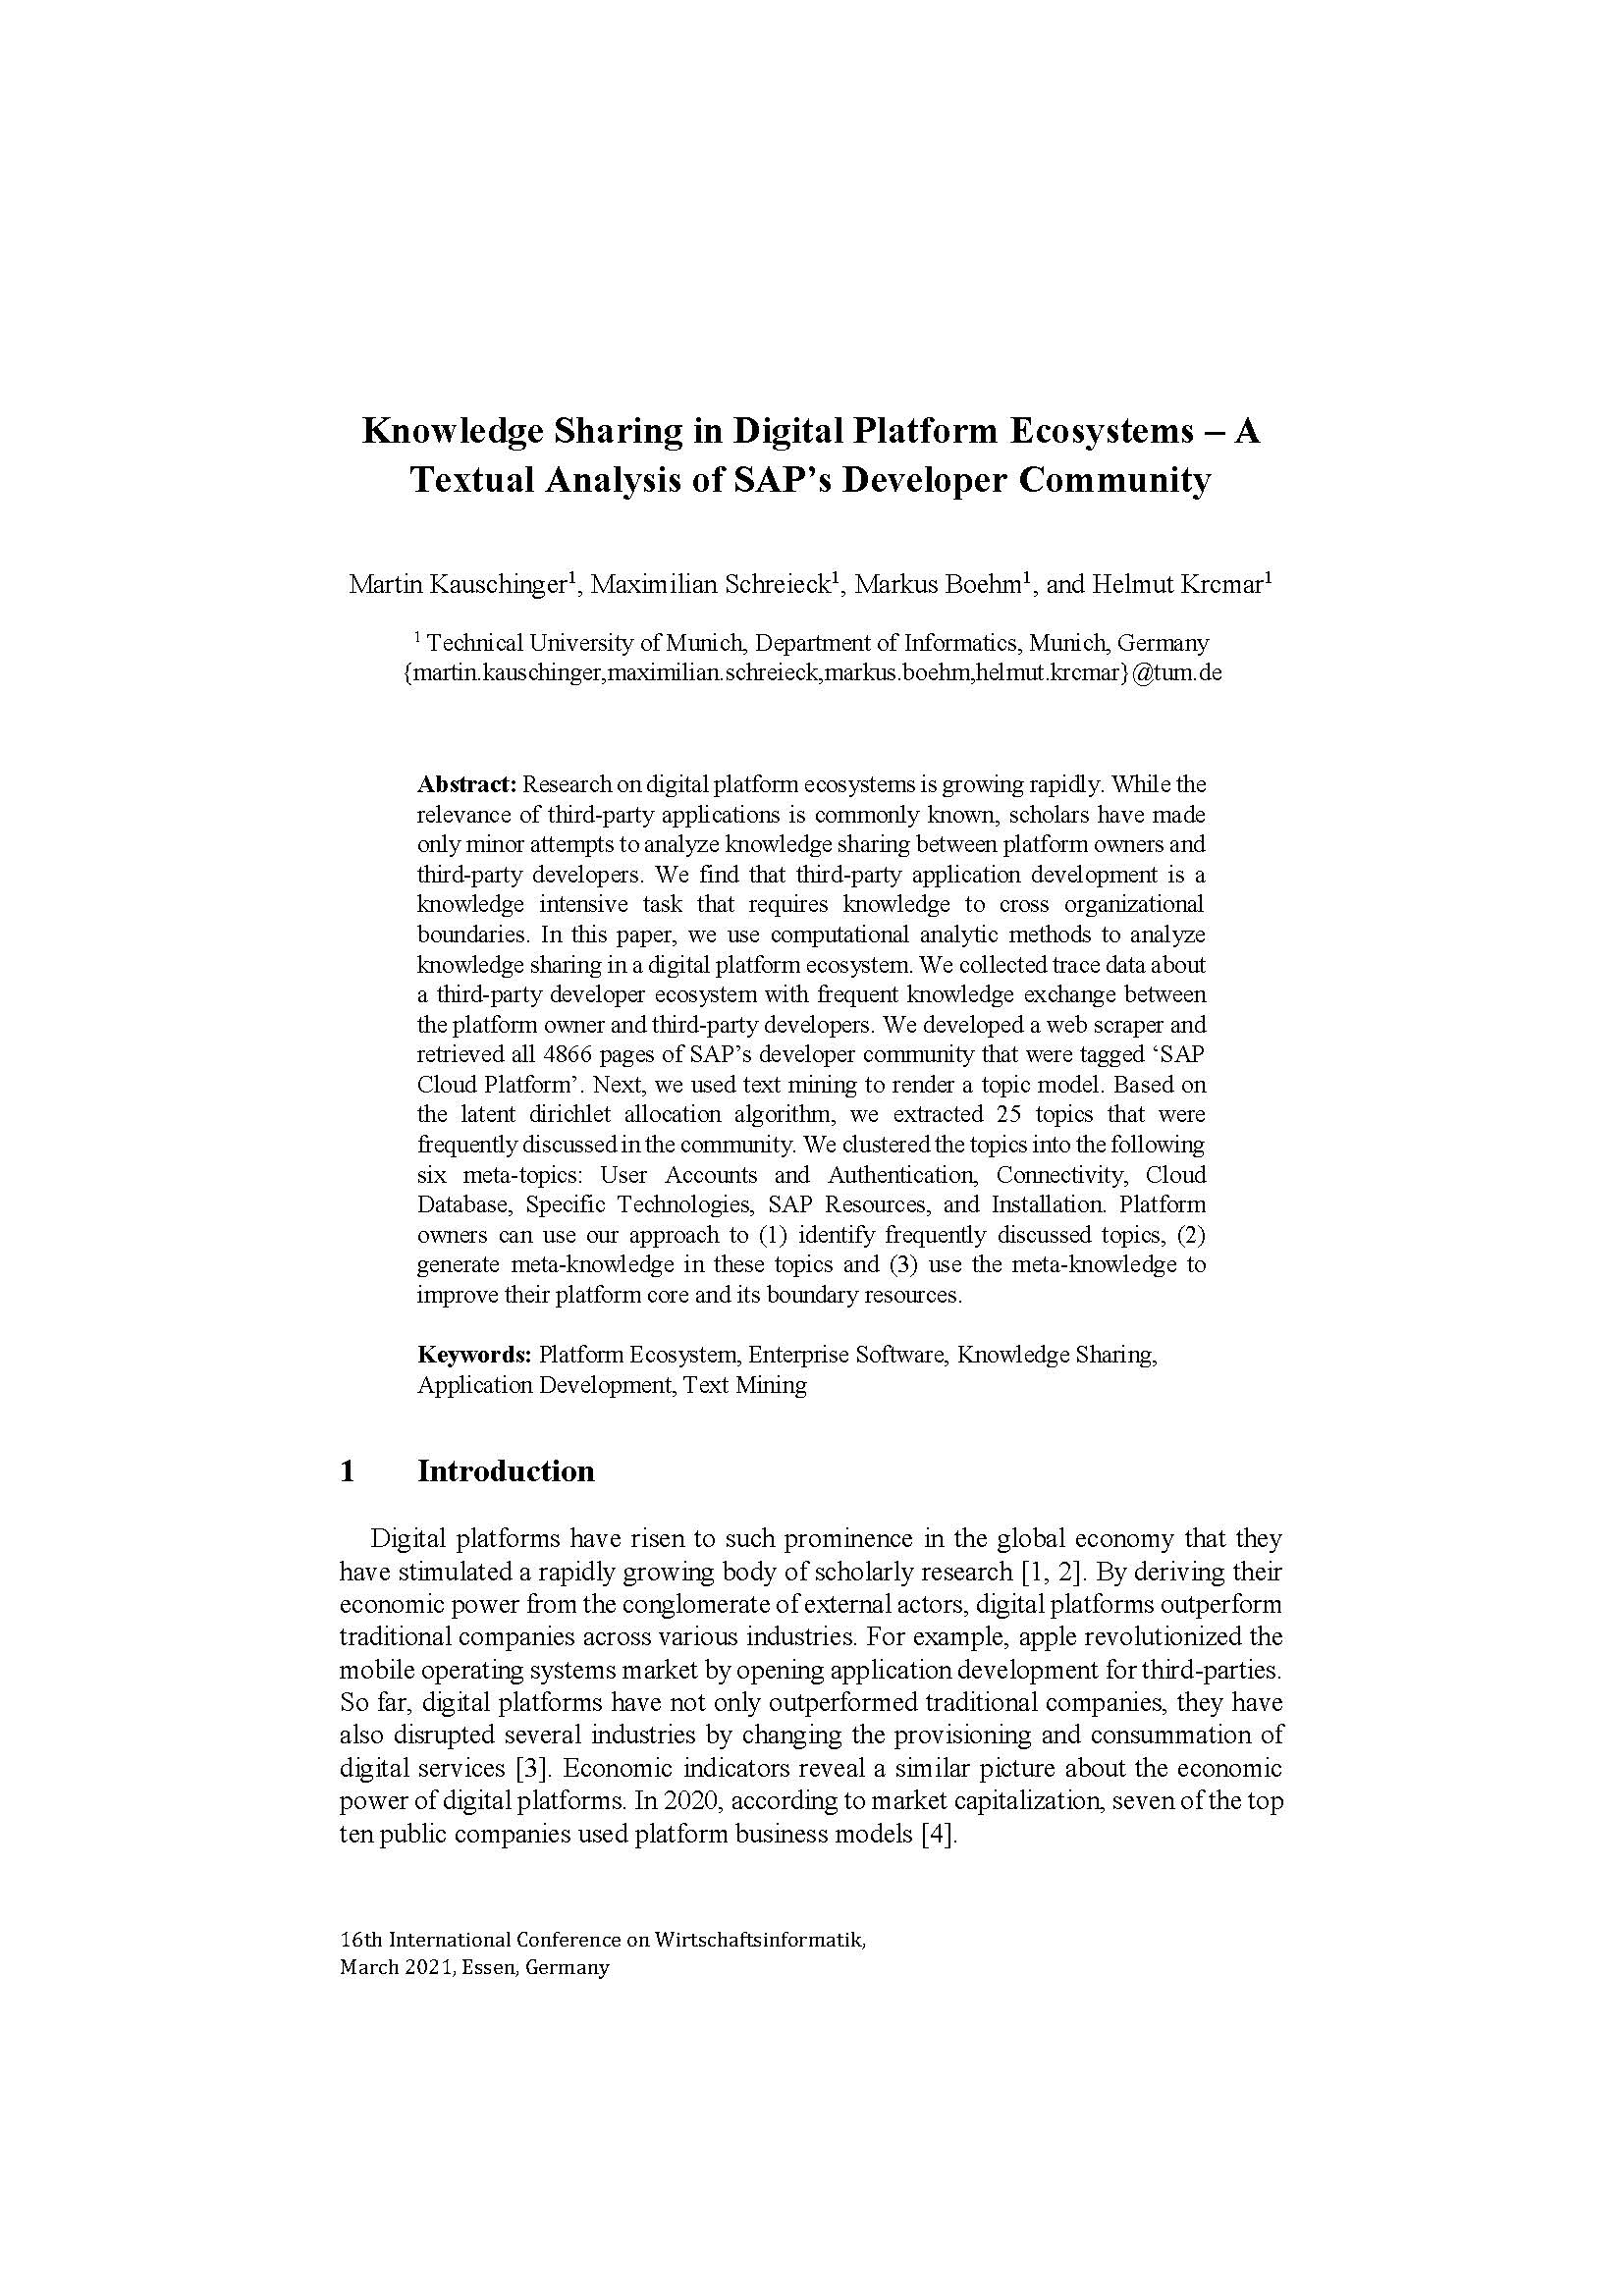 Knowledge Sharing in Digital Platform Ecosystems – A Textual Analysis of SAP's Developer Community